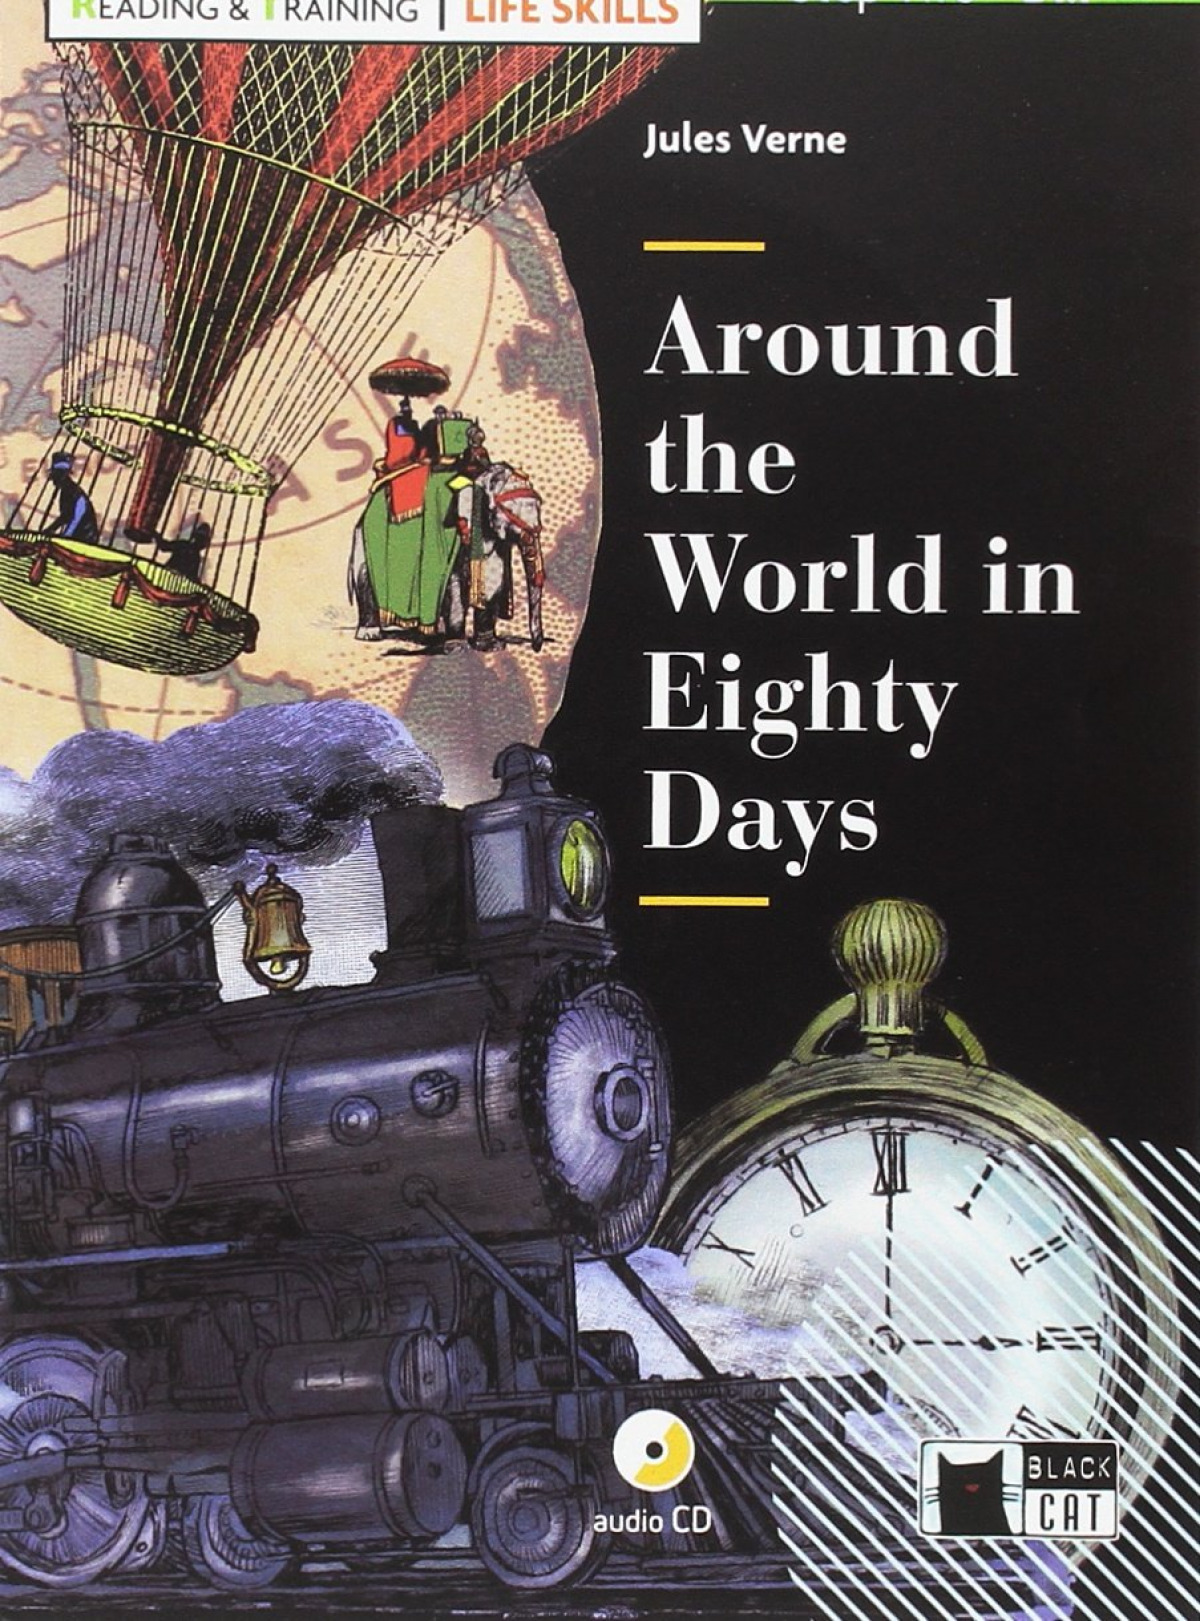 AROUND THE WORLD IN EIGHTY DAYS CON CD SERIE LIKE SKILLS READING AND TRAINING